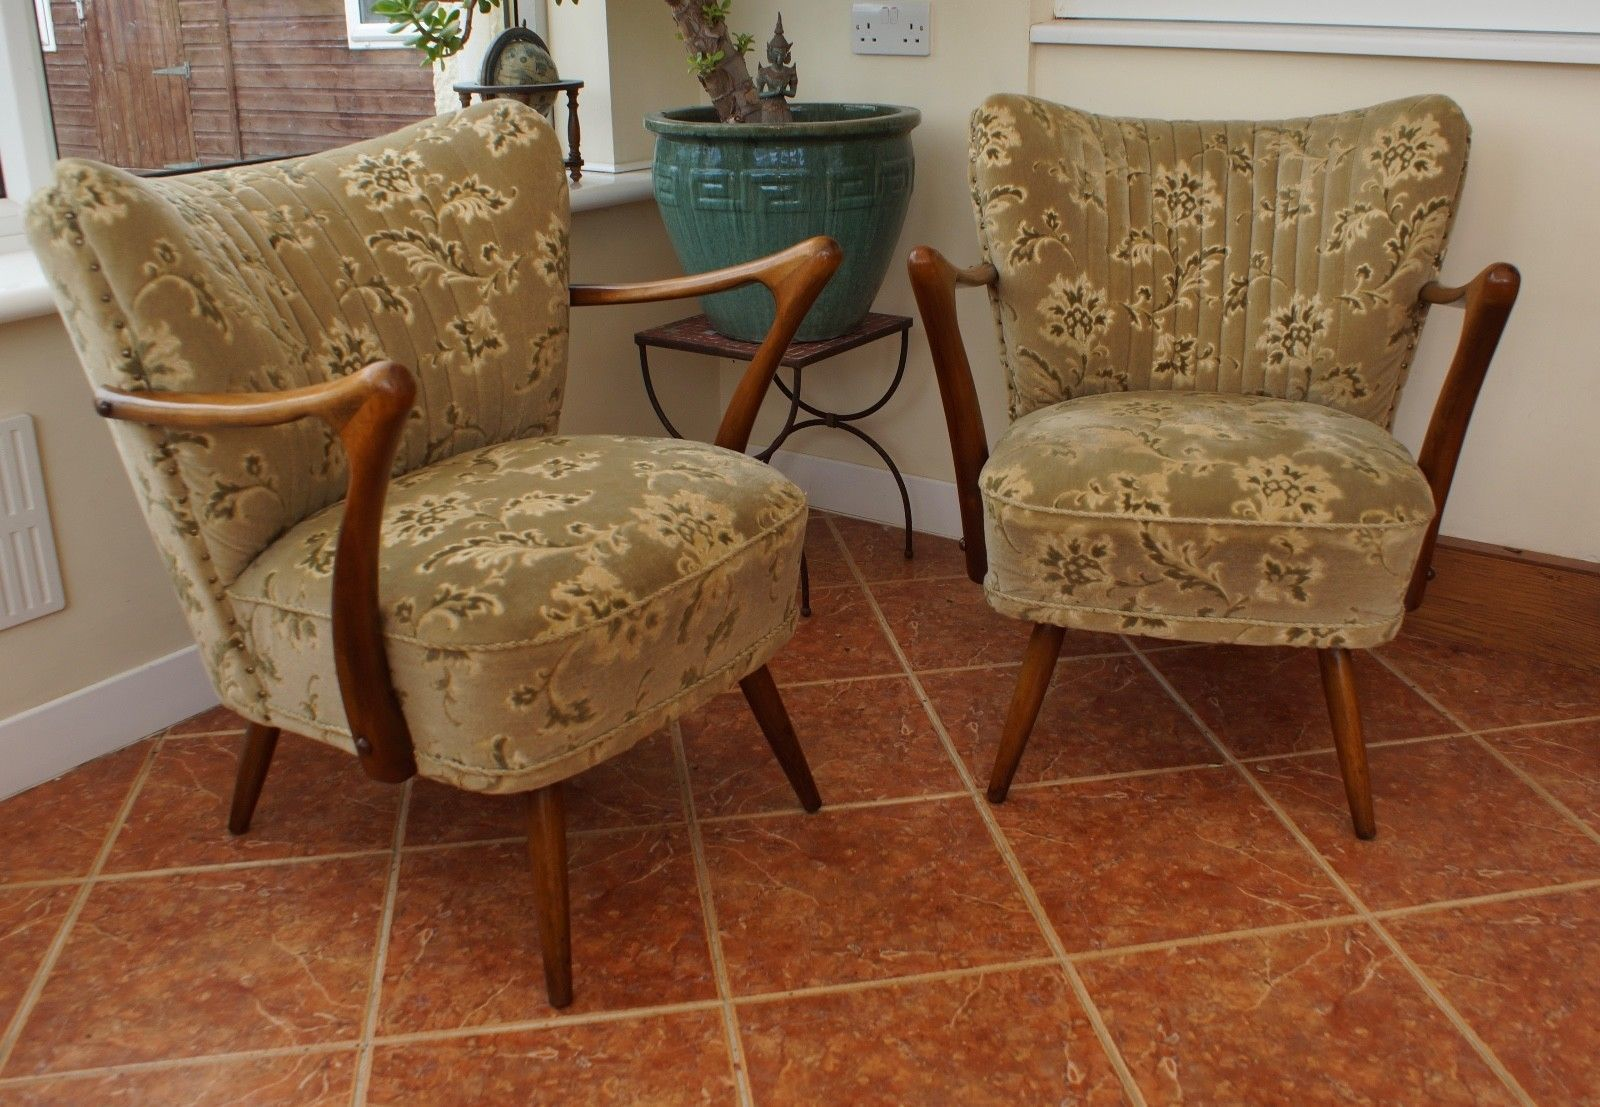 About A Chair 22 Armchair.Pair Of Mid Century Vintage German Cocktail Armchairs Chairs Apr18 22